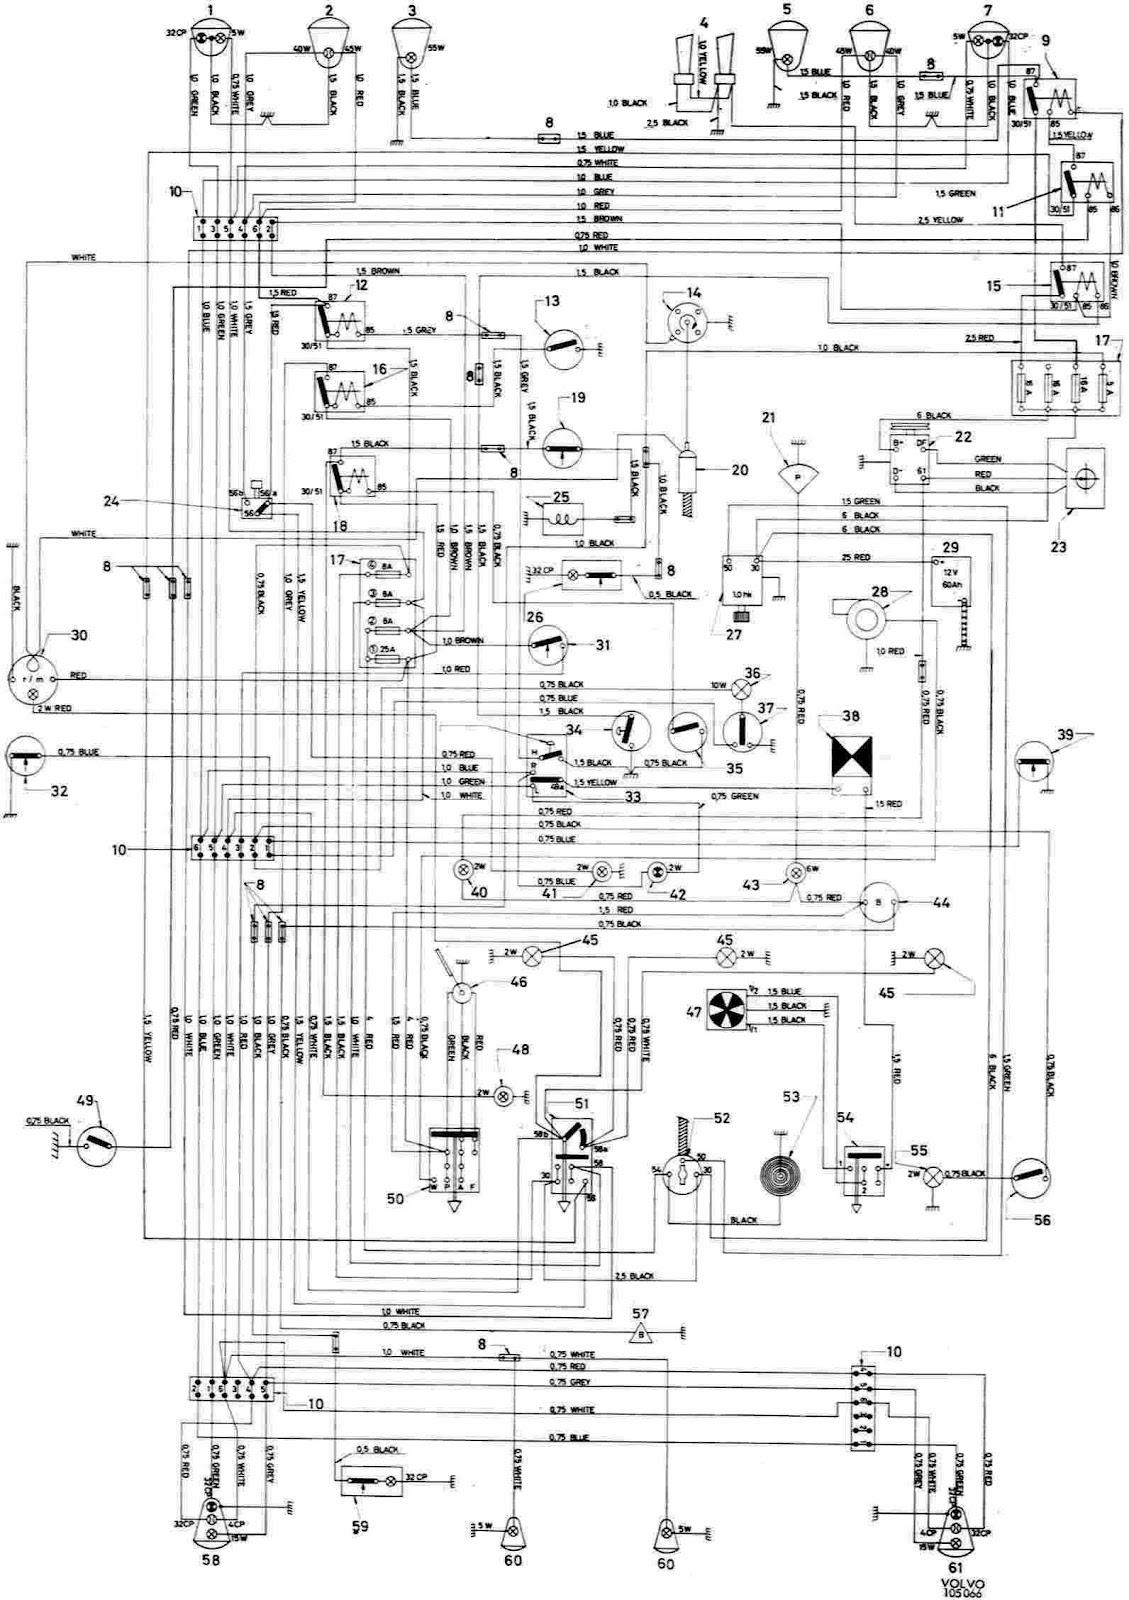 volvo truck wiring diagrams on wiring diagram 2004 volvo truck wiring diagrams schematics wiring diagram volvo truck air horn wiring diagram 2007 volvo